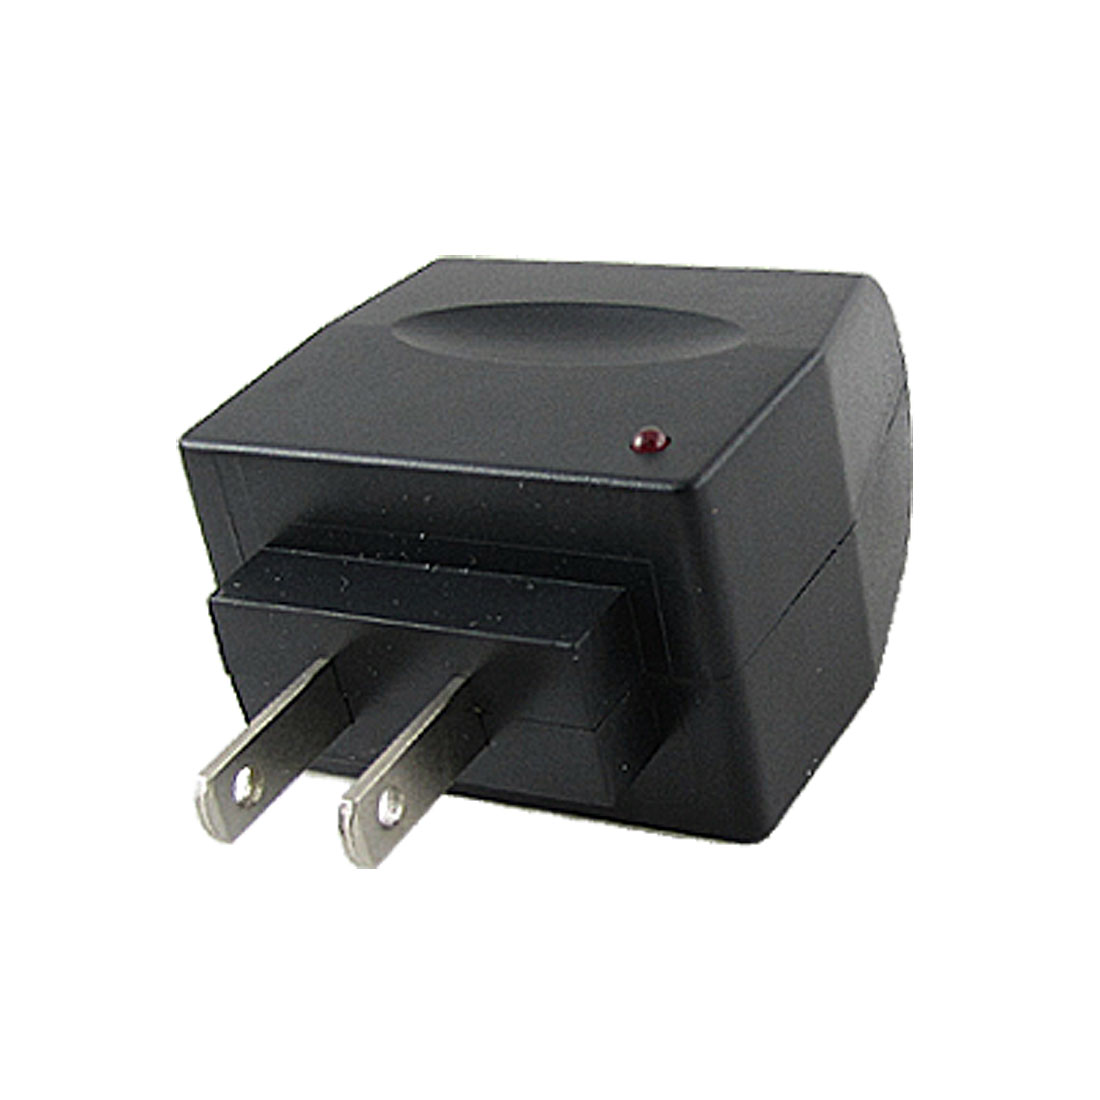 US 2 Pin Plug AC 110-220V to DC 12V Car Cigarette Lighter Socket Power Adapter